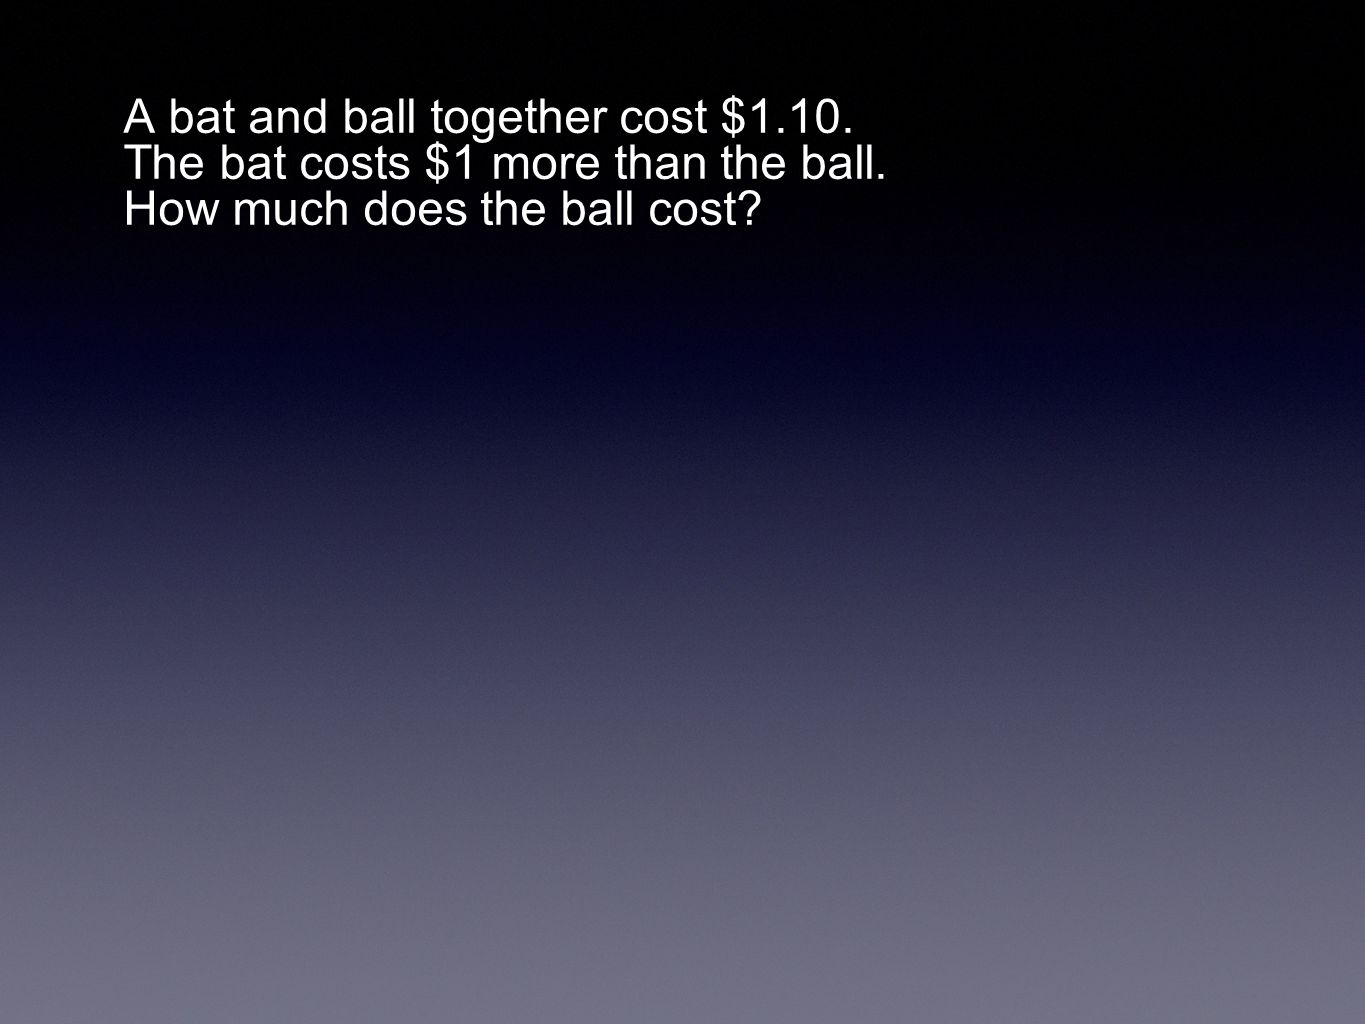 emid A bat and ball together cost $1.10. The bat costs $1 more than the ball.